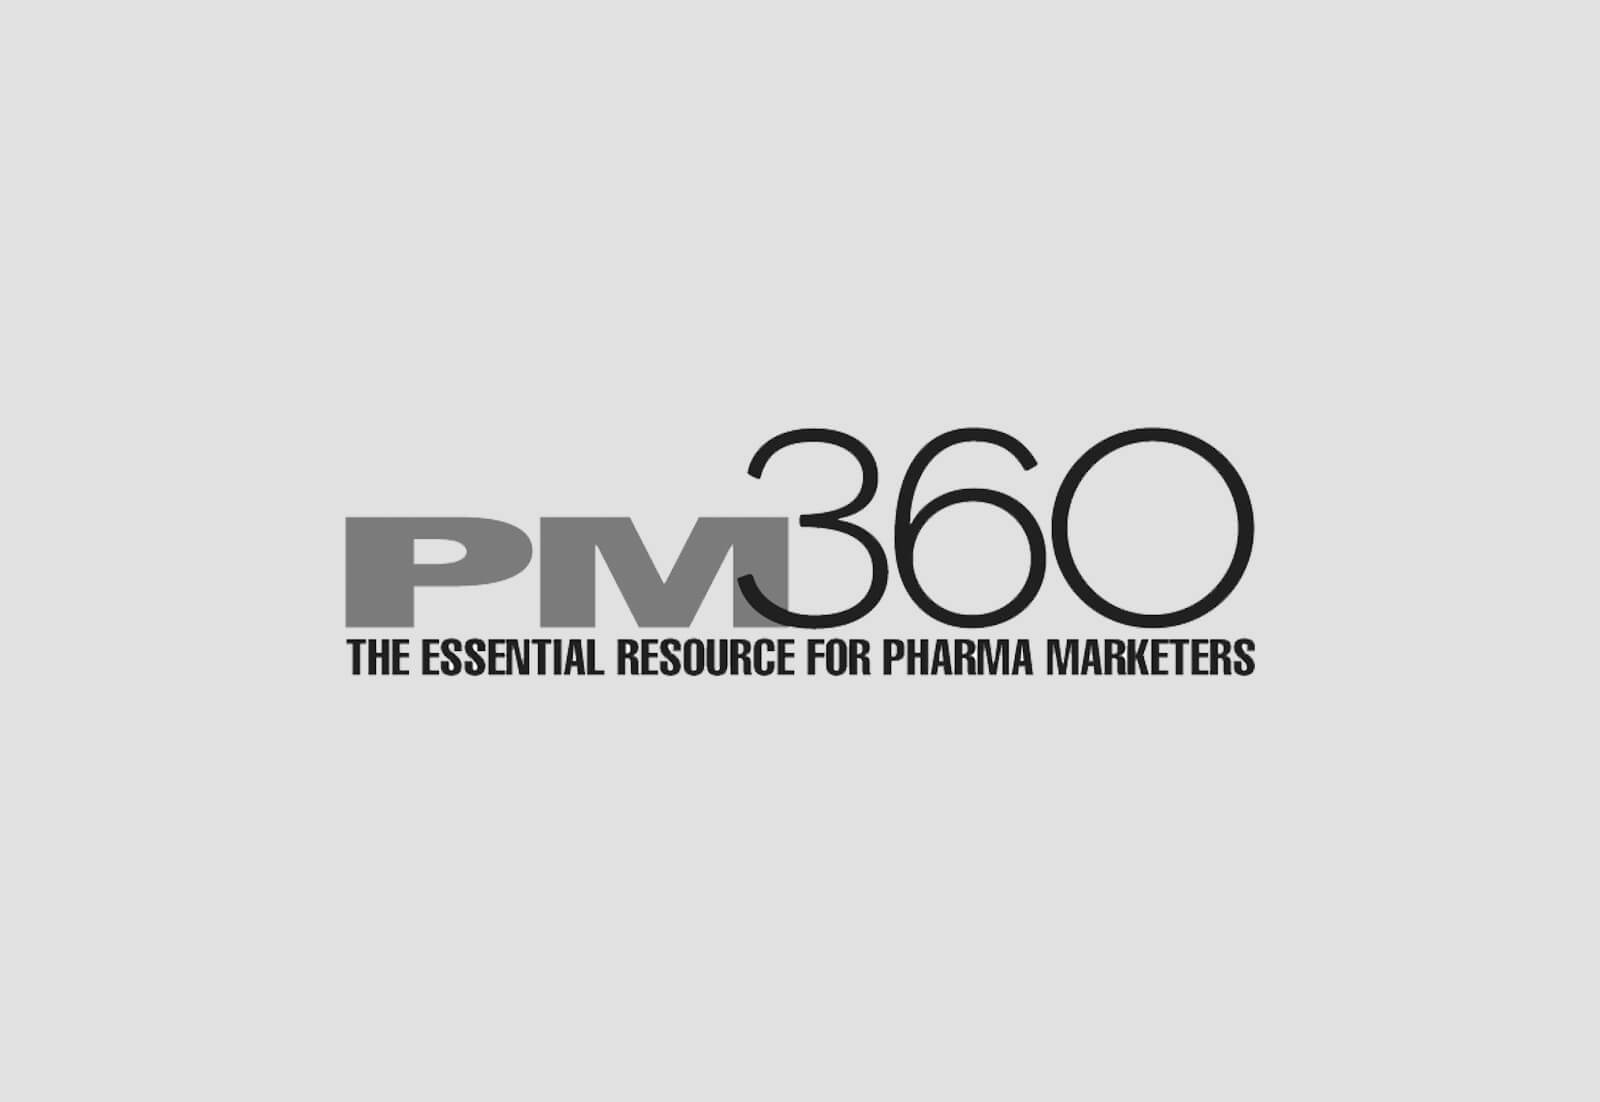 PM360 2020 Innovative Service Field Coaching Report Analysis from Intouch Group